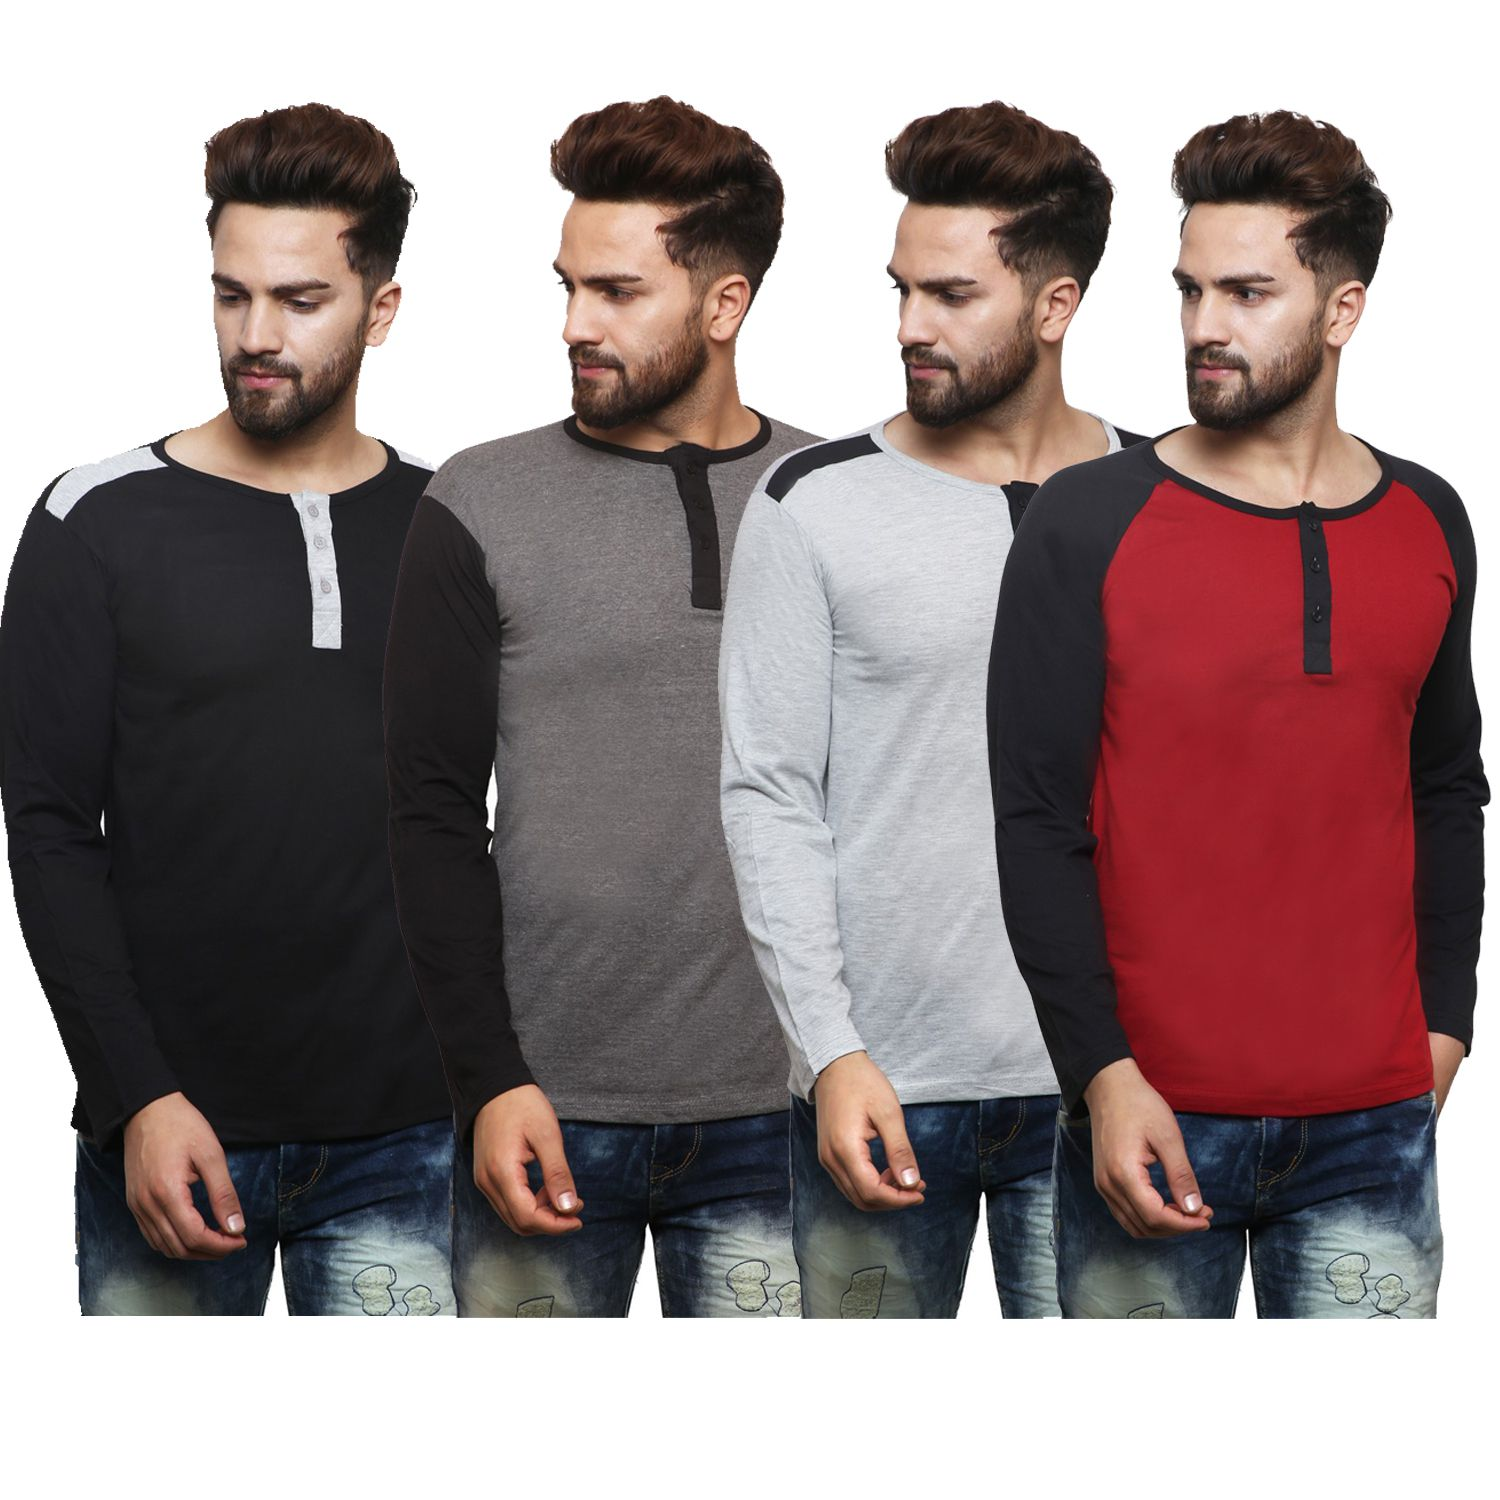 X-CROSS Multi Henley T-Shirt Pack of 4